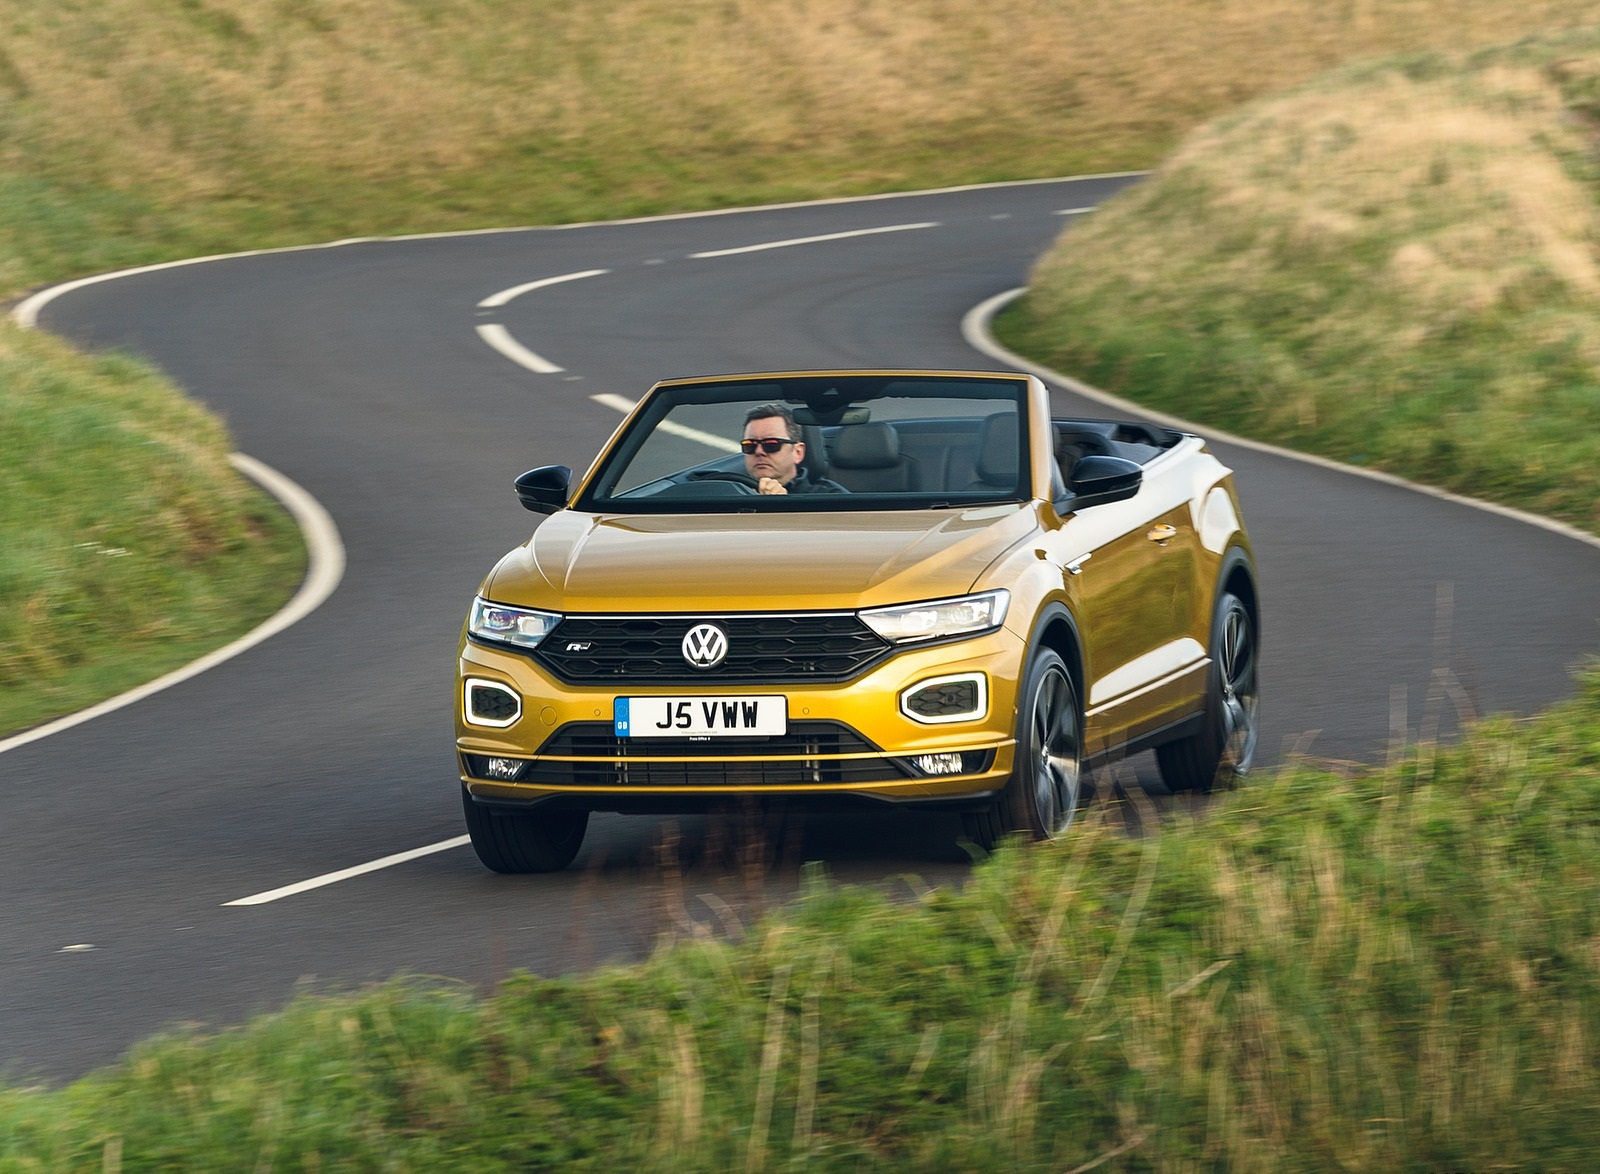 2020 Volkswagen T-Roc R-Line Cabriolet (UK-Spec) Front Three-Quarter Wallpapers (1)